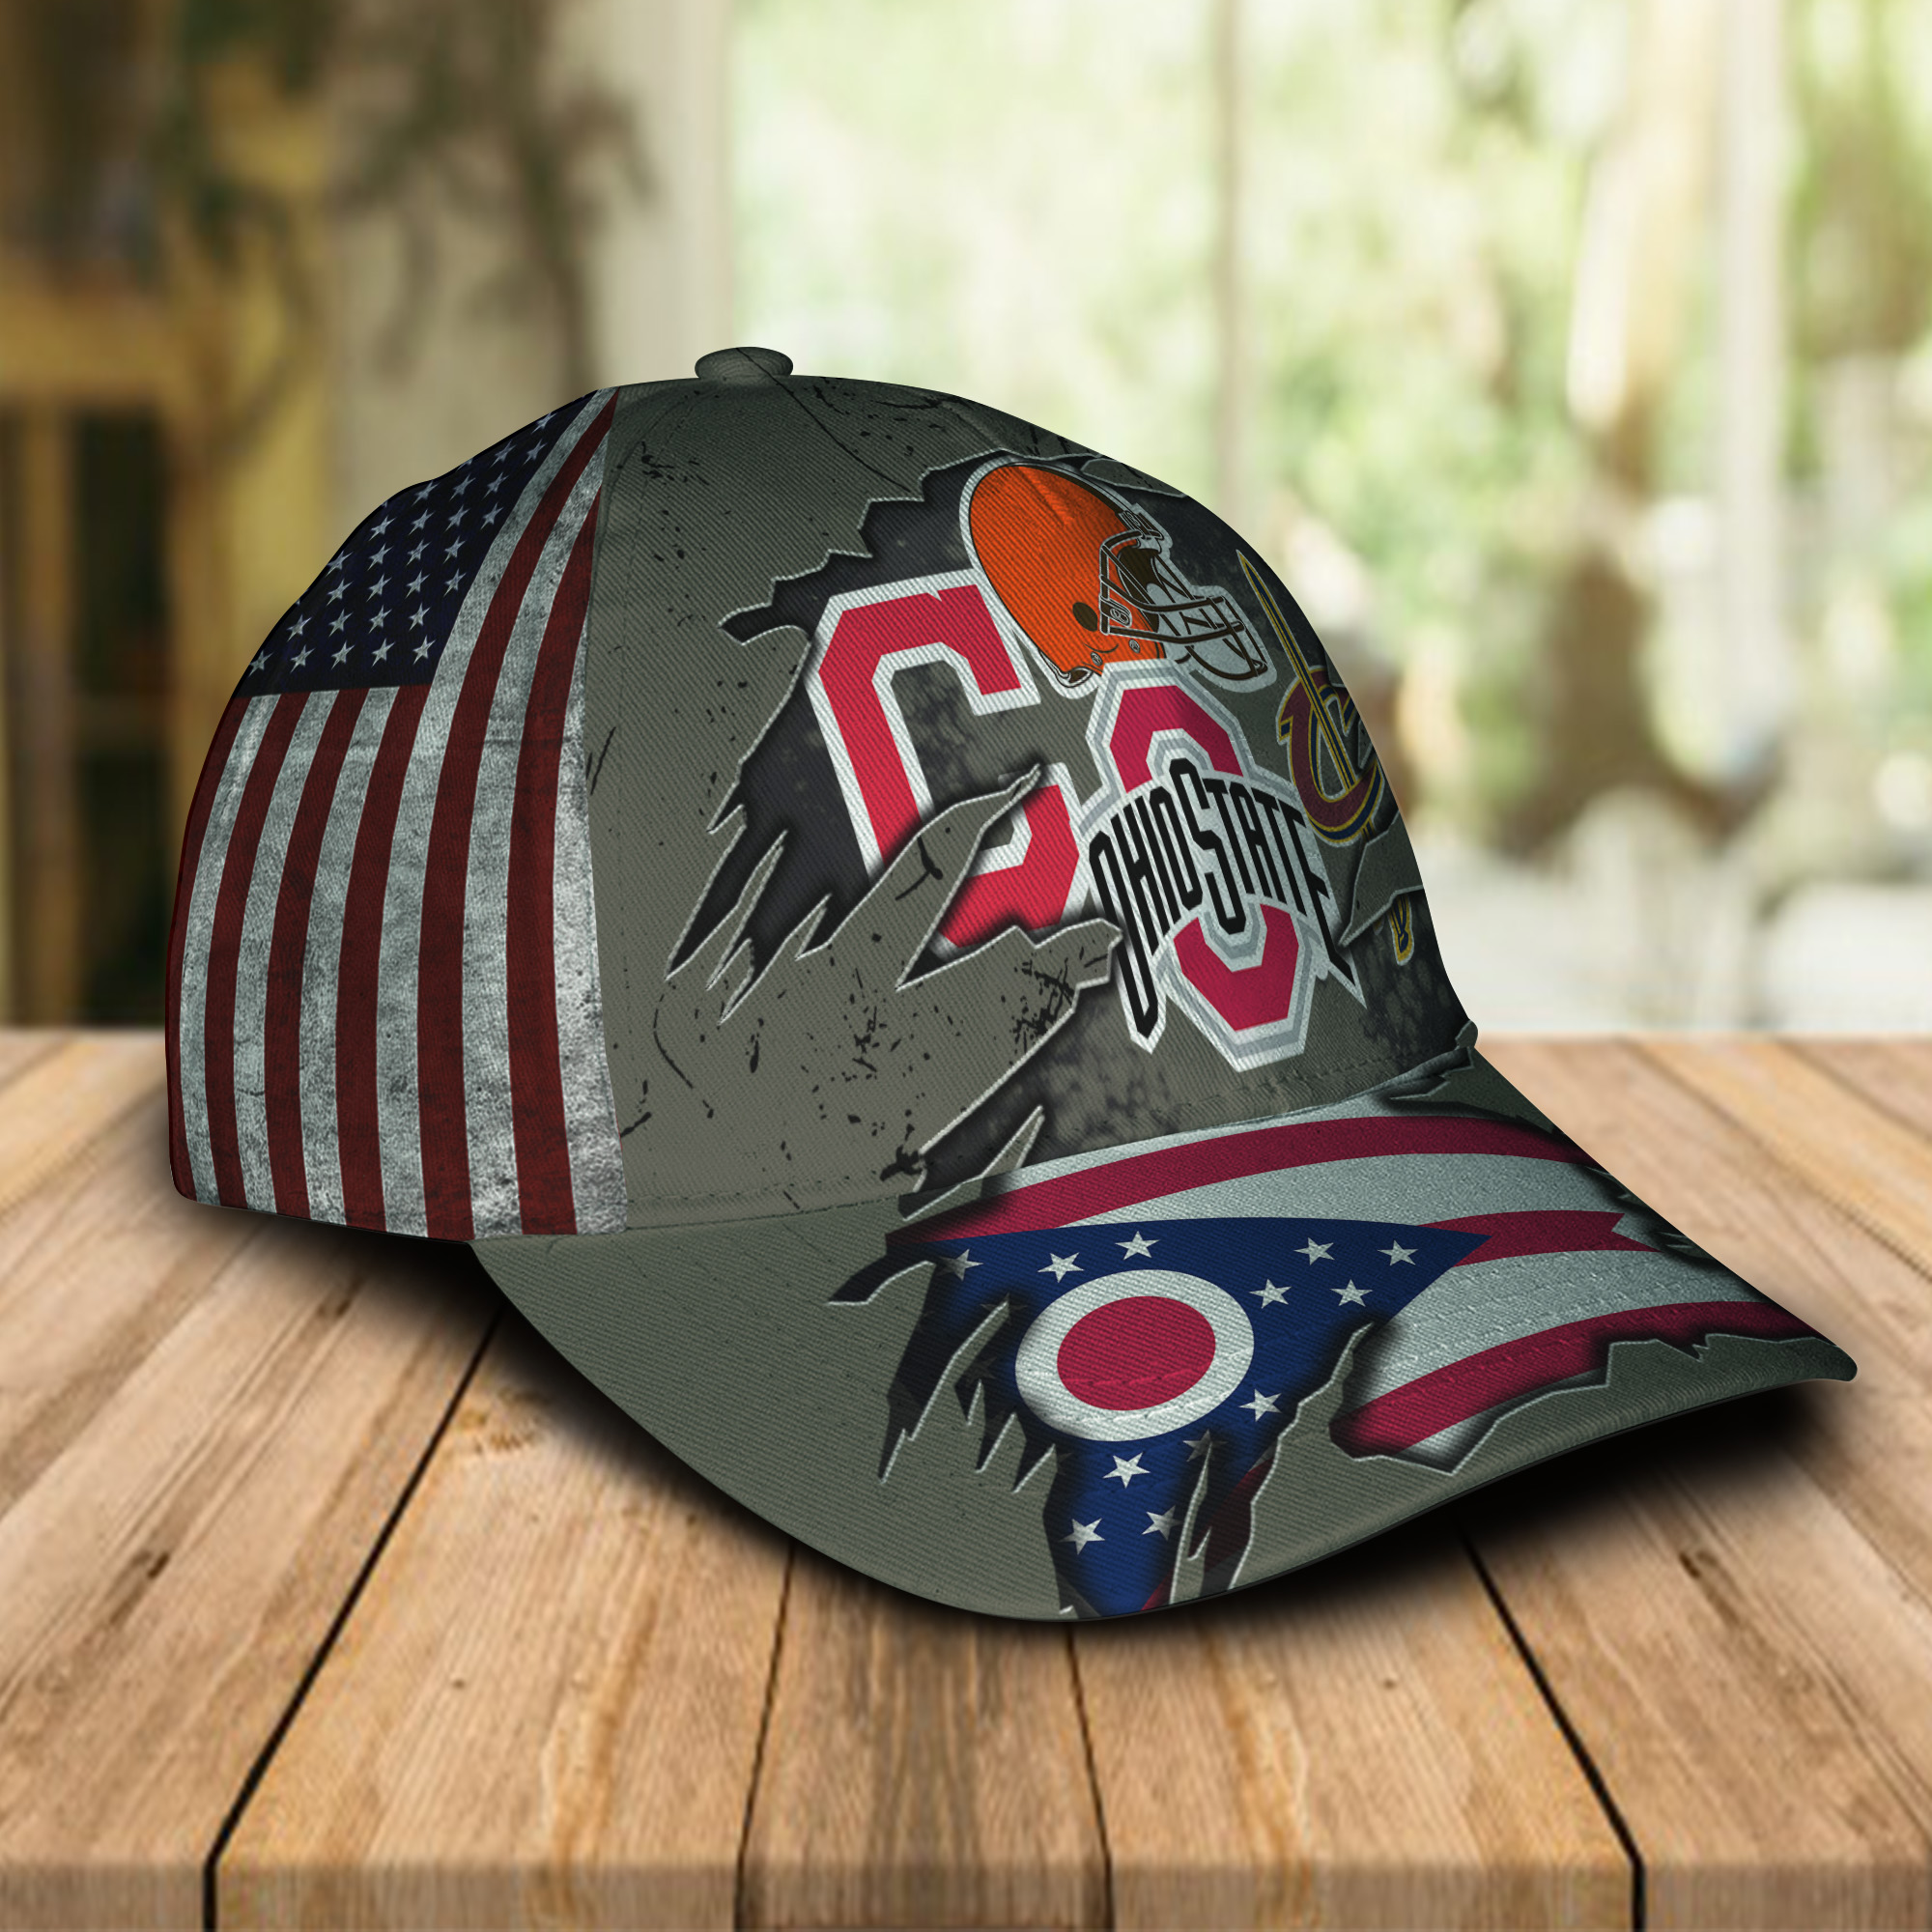 Ohio state buckeys cleveland cavaliers cleveland indians cleveland browns cap 2